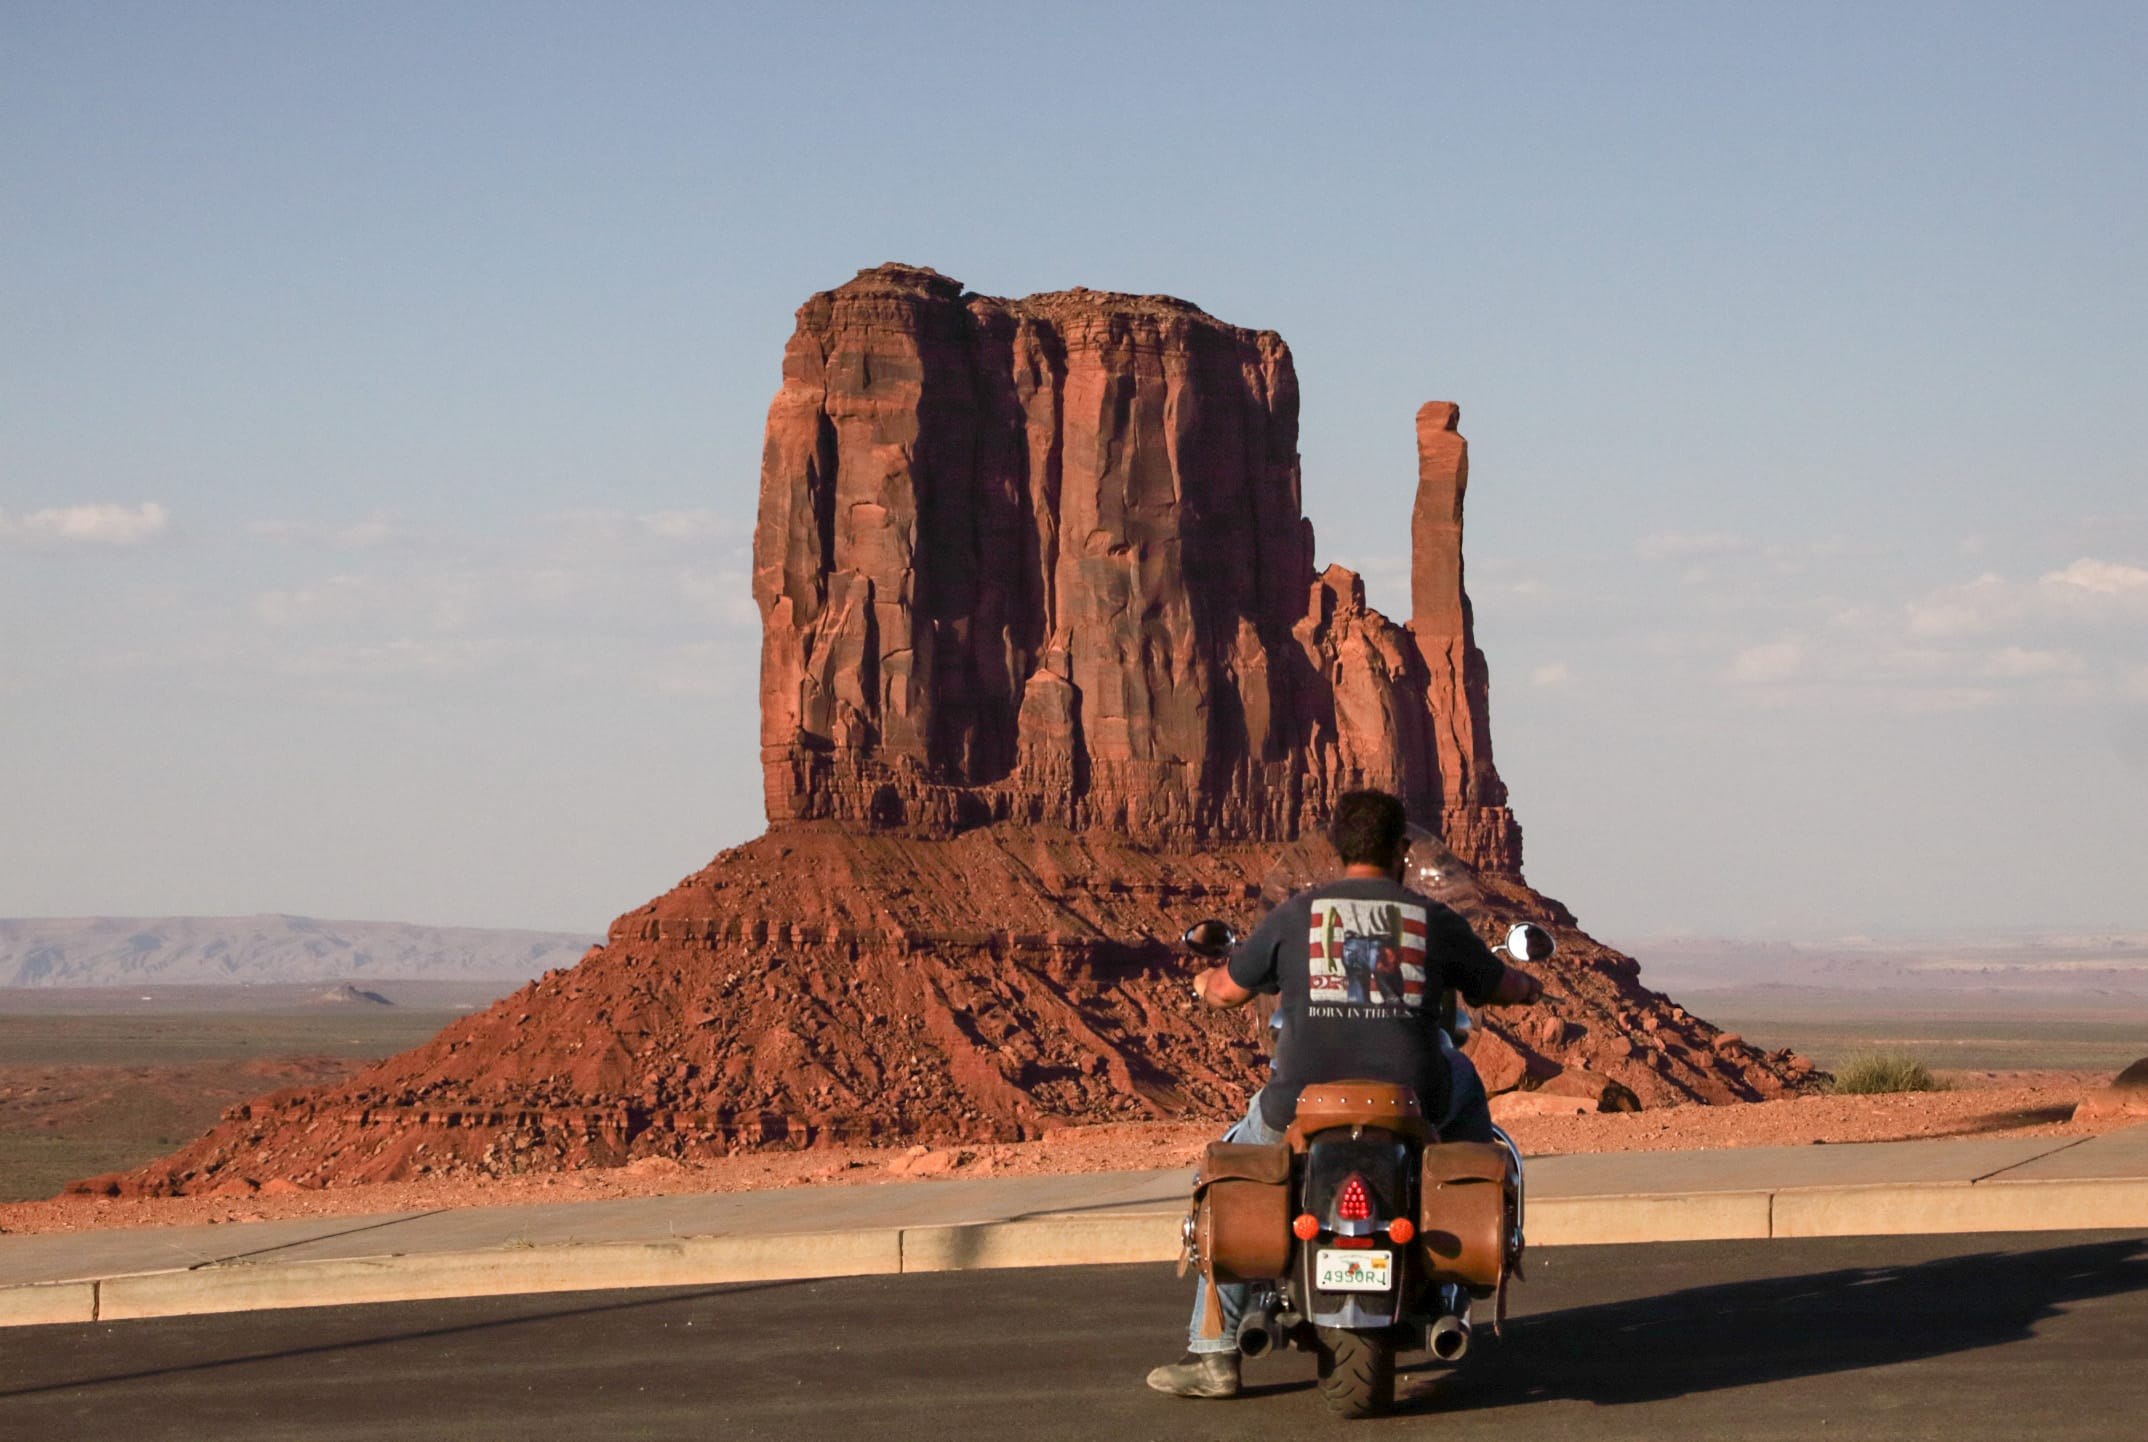 RIDE IN THE USA: IL SOGNO AMERICANO